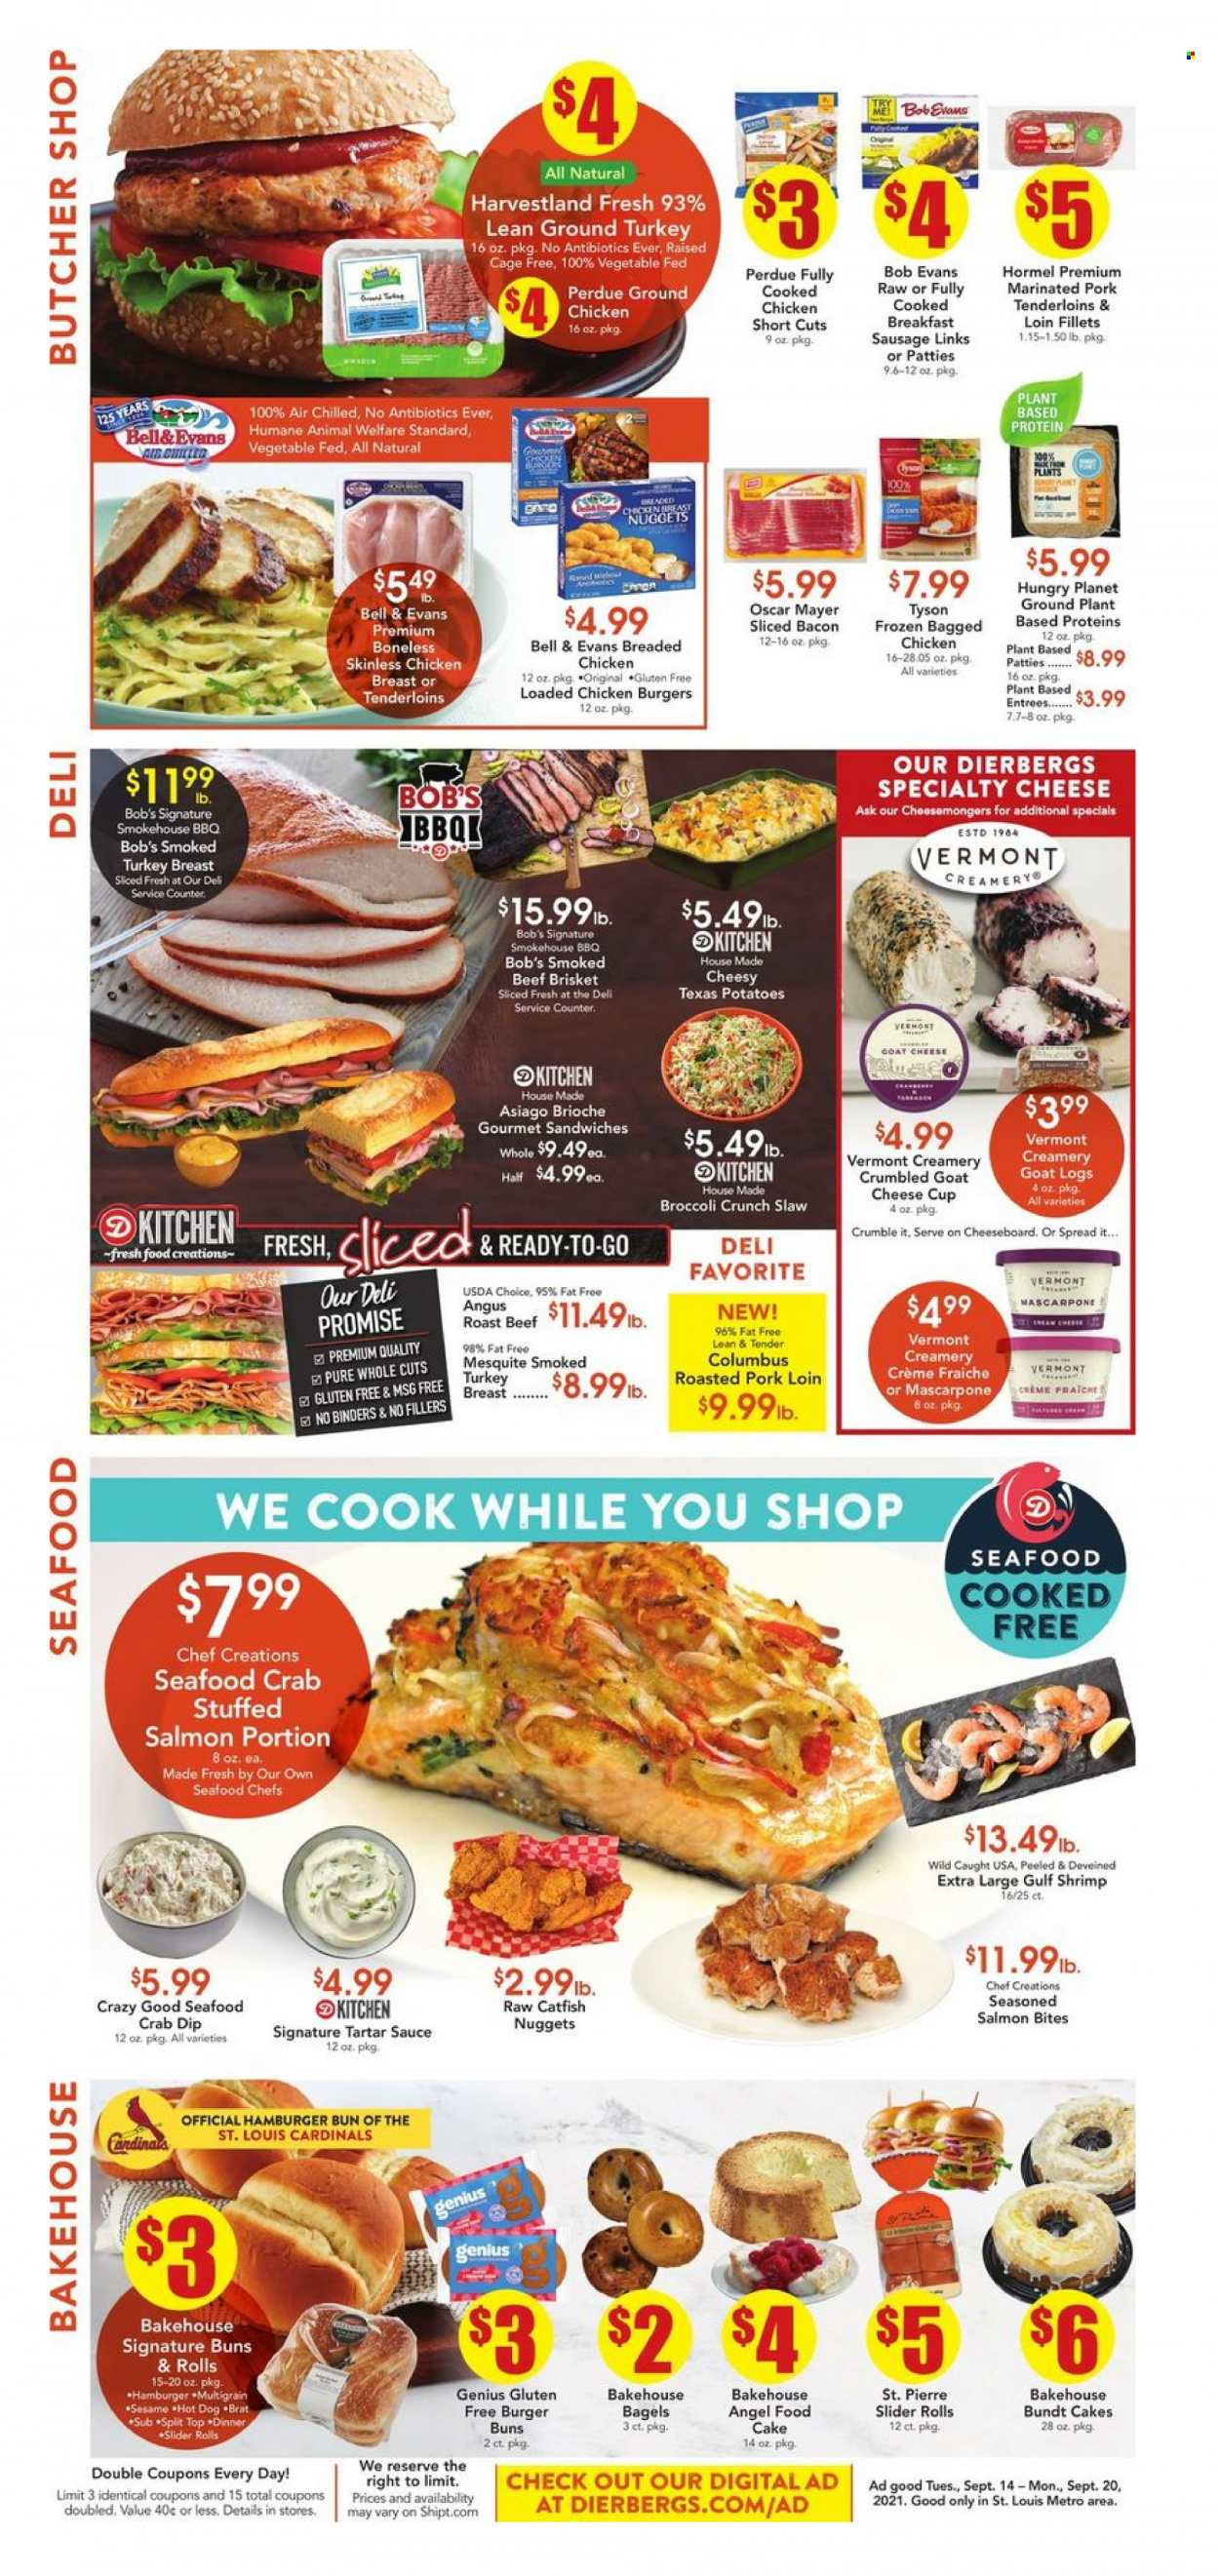 Dierbergs Ad from september 14 to 20 2021 - Page 5